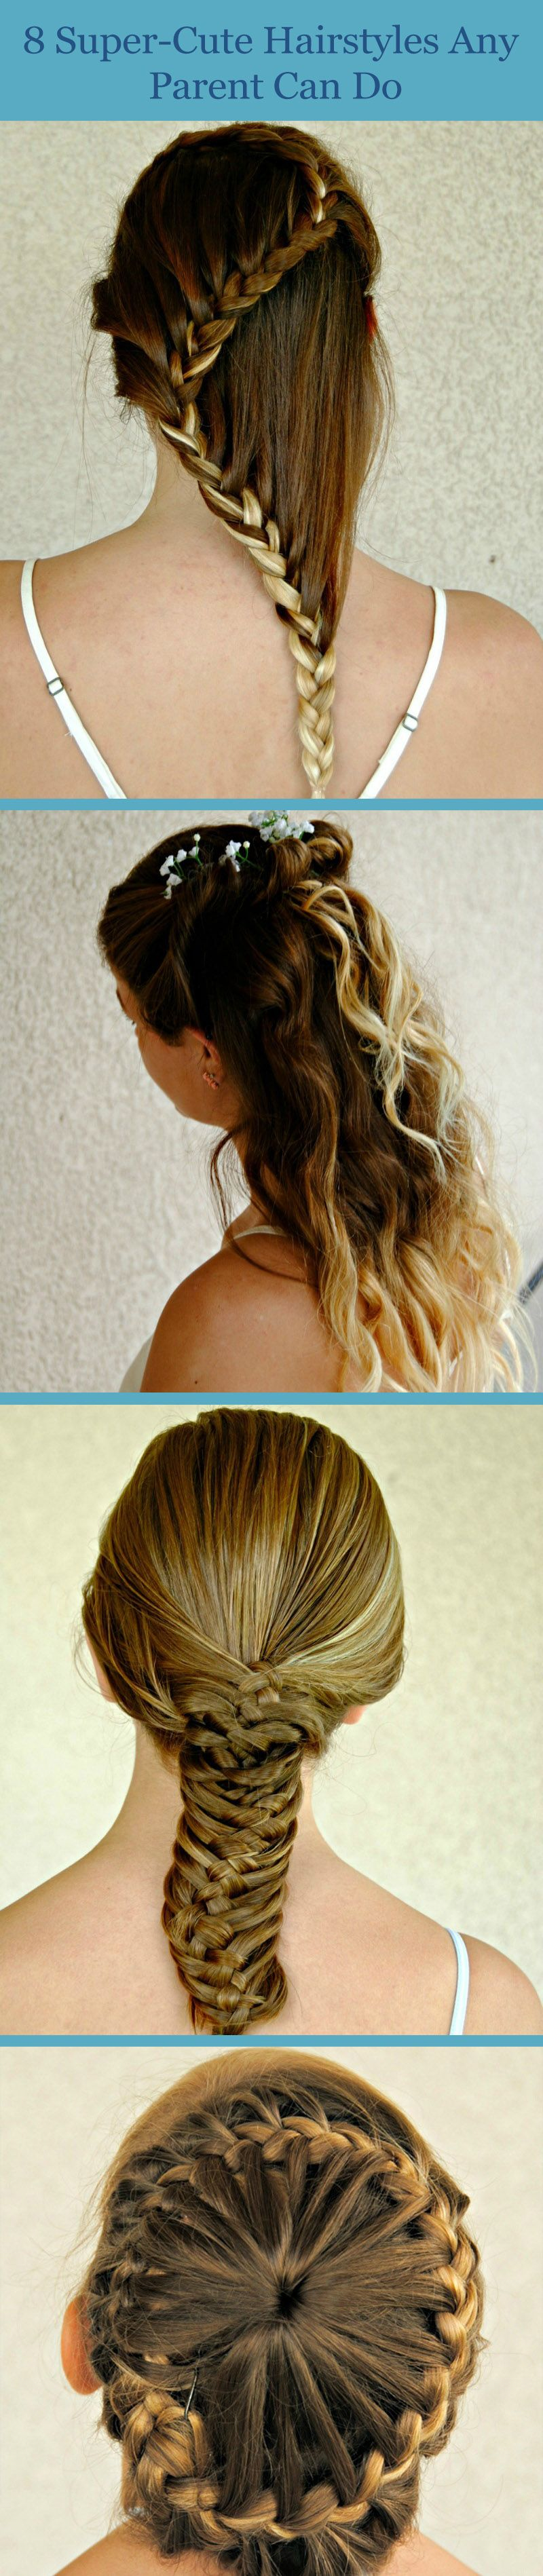 8 super-cute hairstyles any parent can do themselves   hair